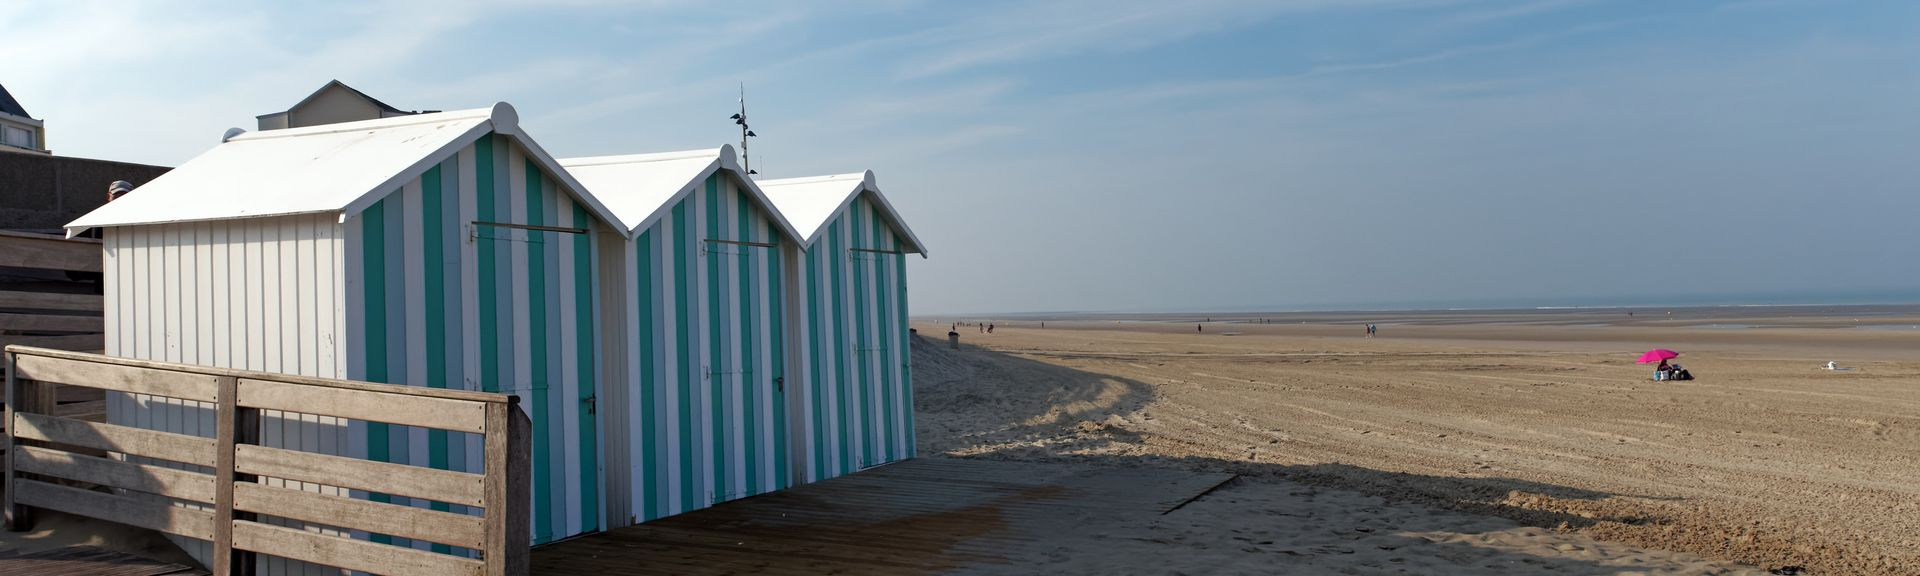 Fort-Mahon-Plage, Somme (department), France